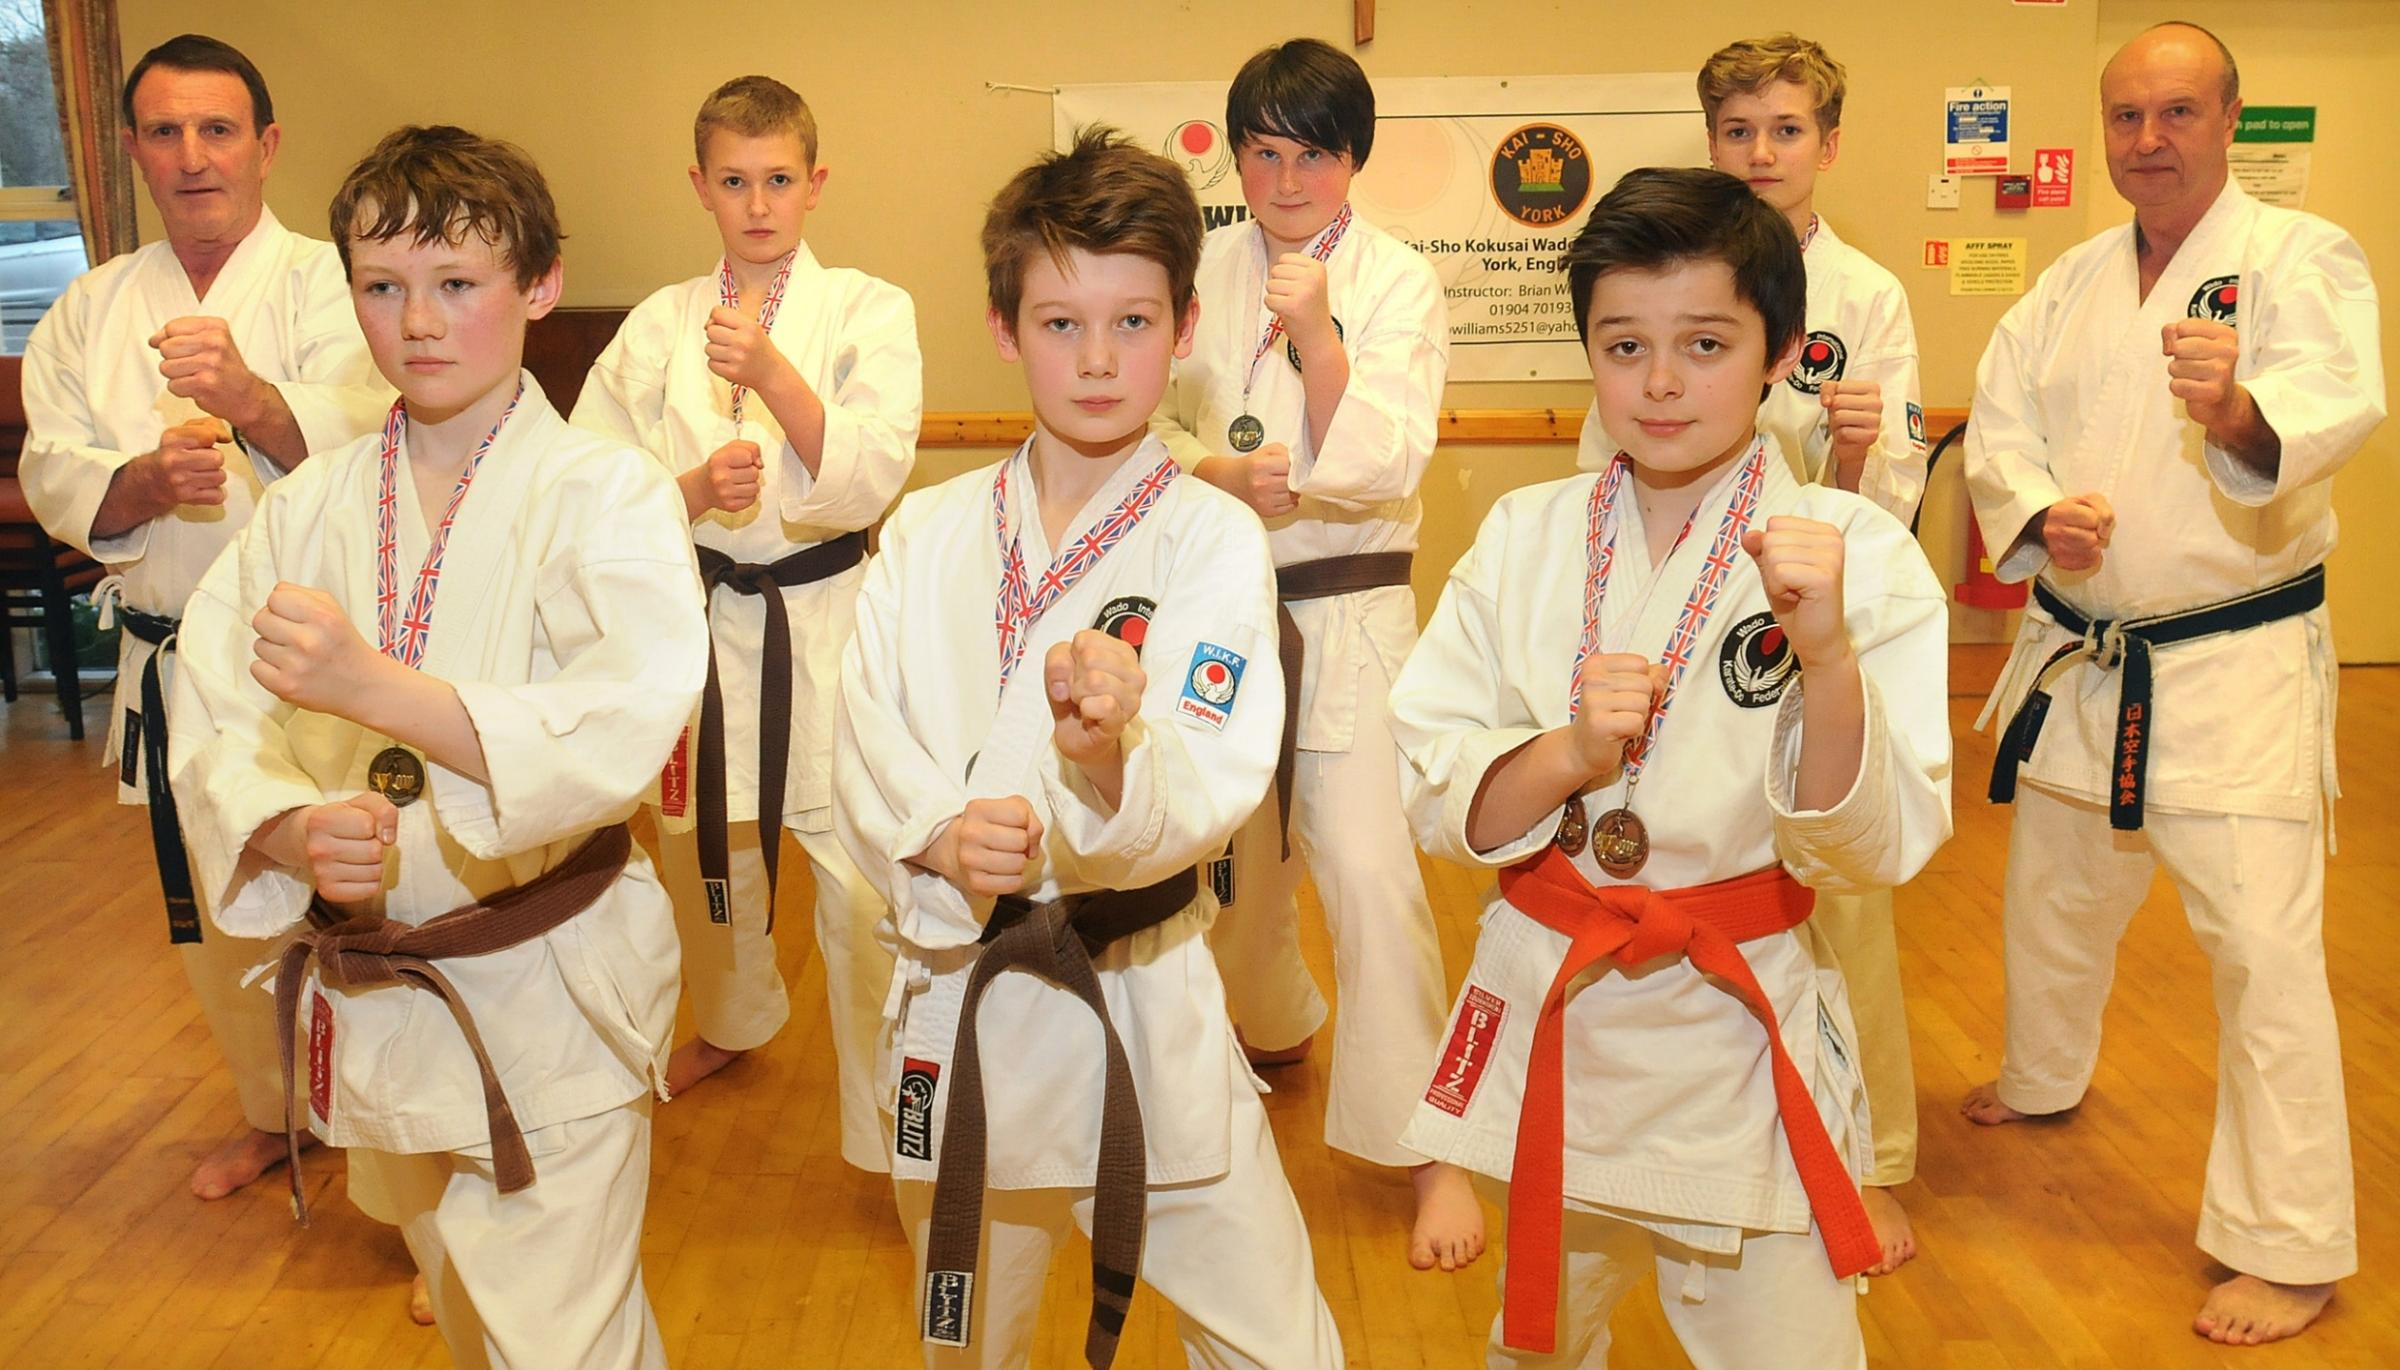 Kai-Sho Karate Club instructors Brian Williams, left, and Brian Hughes, right, with medal winners at the WIKF National Championships, from left, Henry Rice, Owen Lewis, Angus Gibby, Joseph Curtis, Harry Johnson and Jack Scott